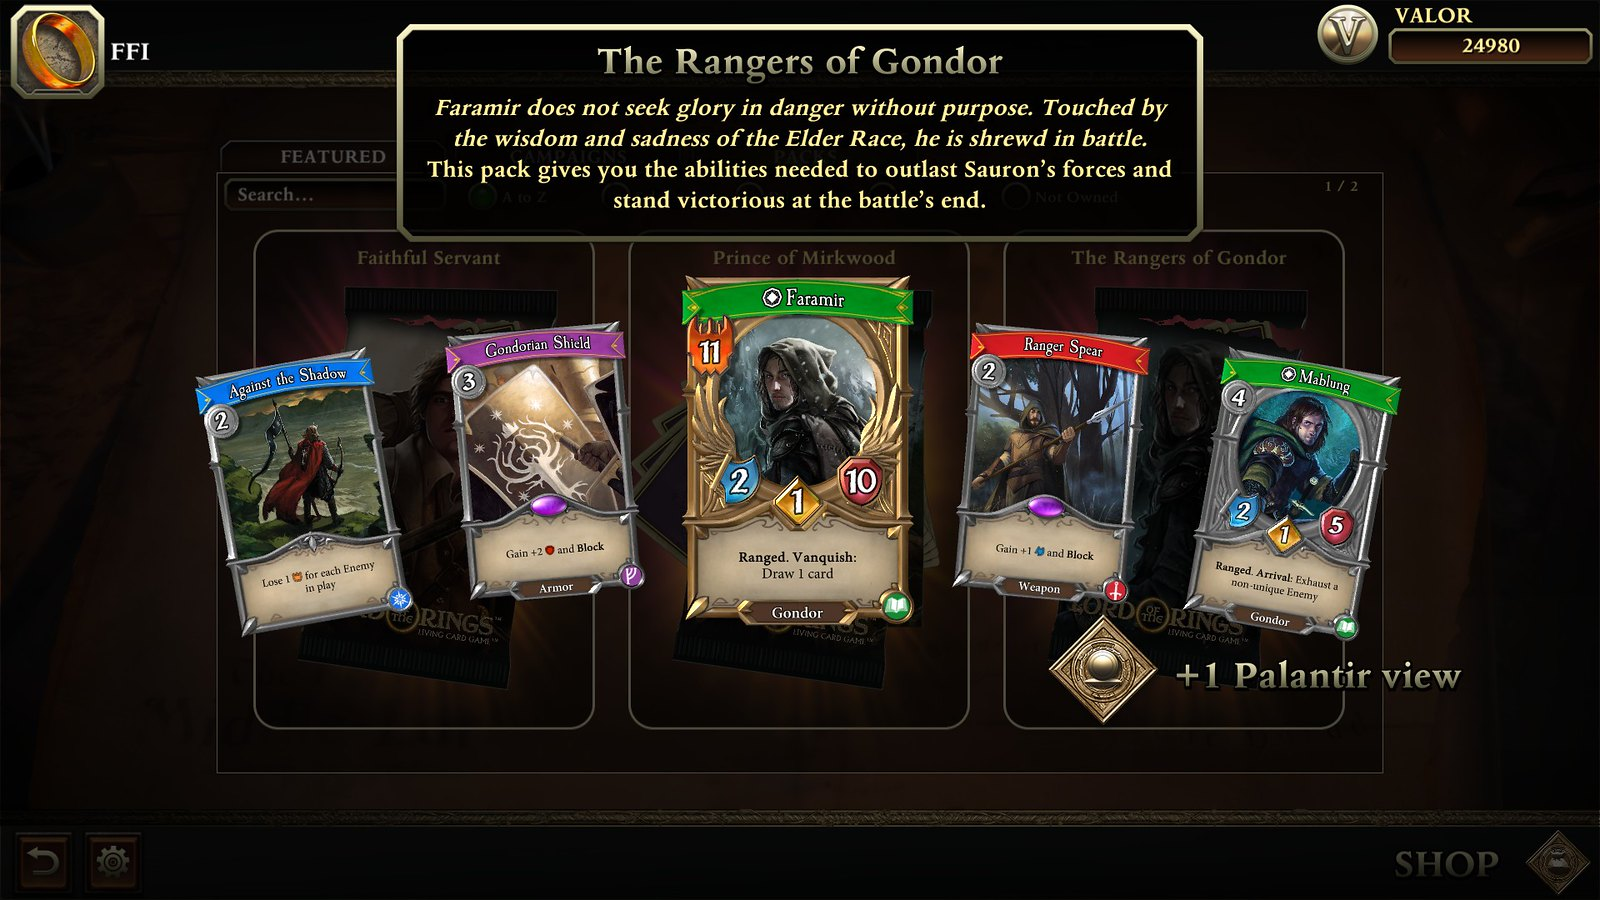 The Lord of the Rings: Adventure Card Game